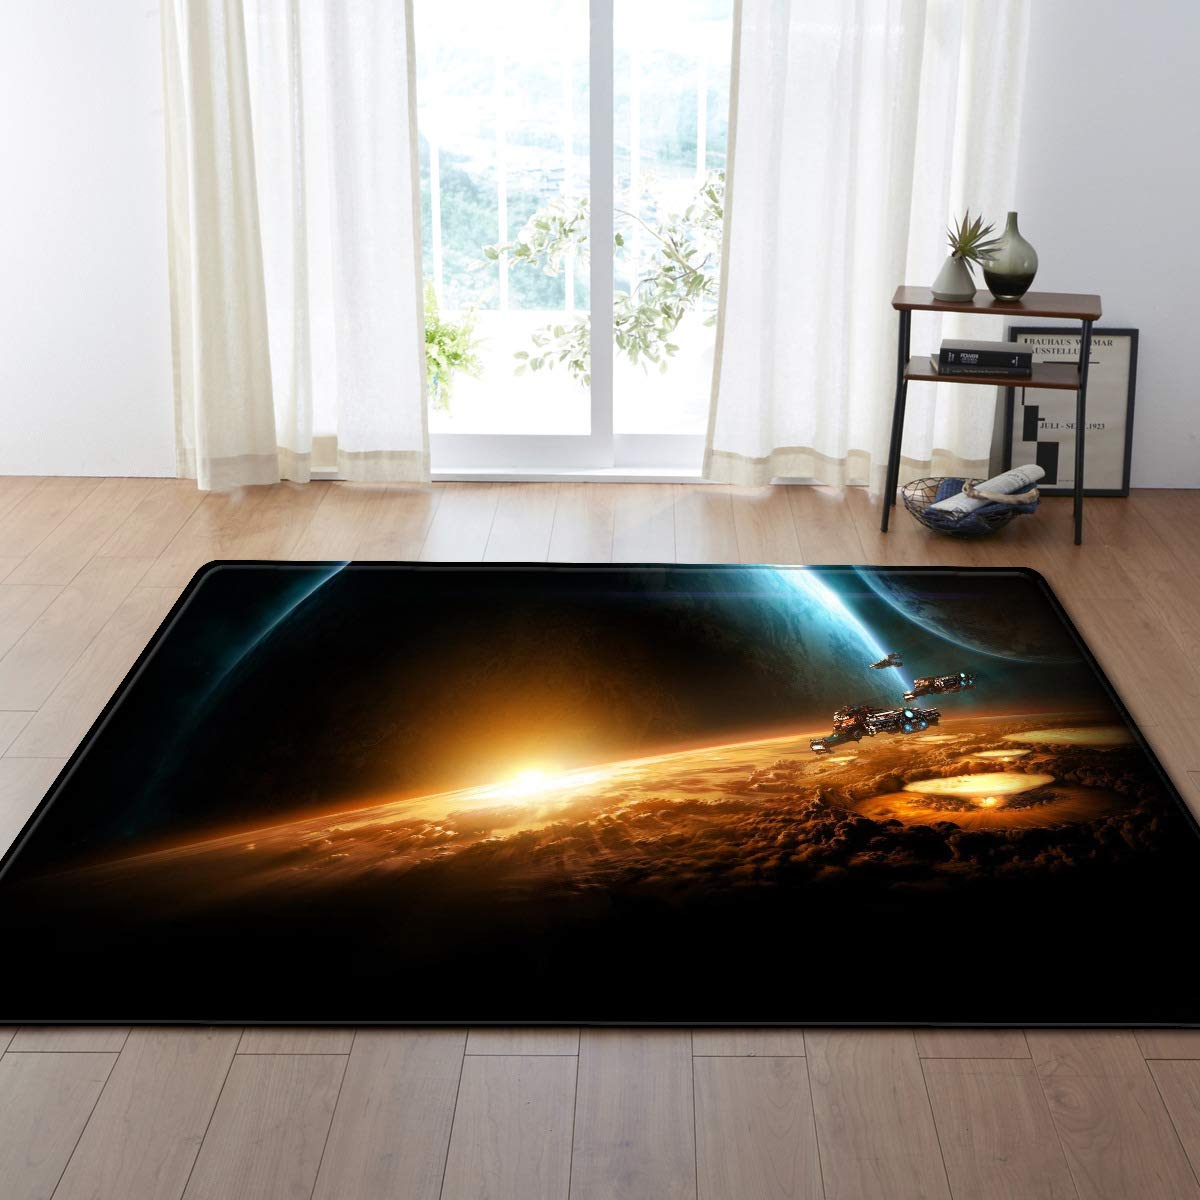 Jimin_Nordic 3D Printed Large Carpets Galaxy Space Cat Mat Soft Flannel Area Rugs Anti-slip Rug for Living Room Home Decor Parlor - (Color: 20; Size: 175x120cm) by Jimin